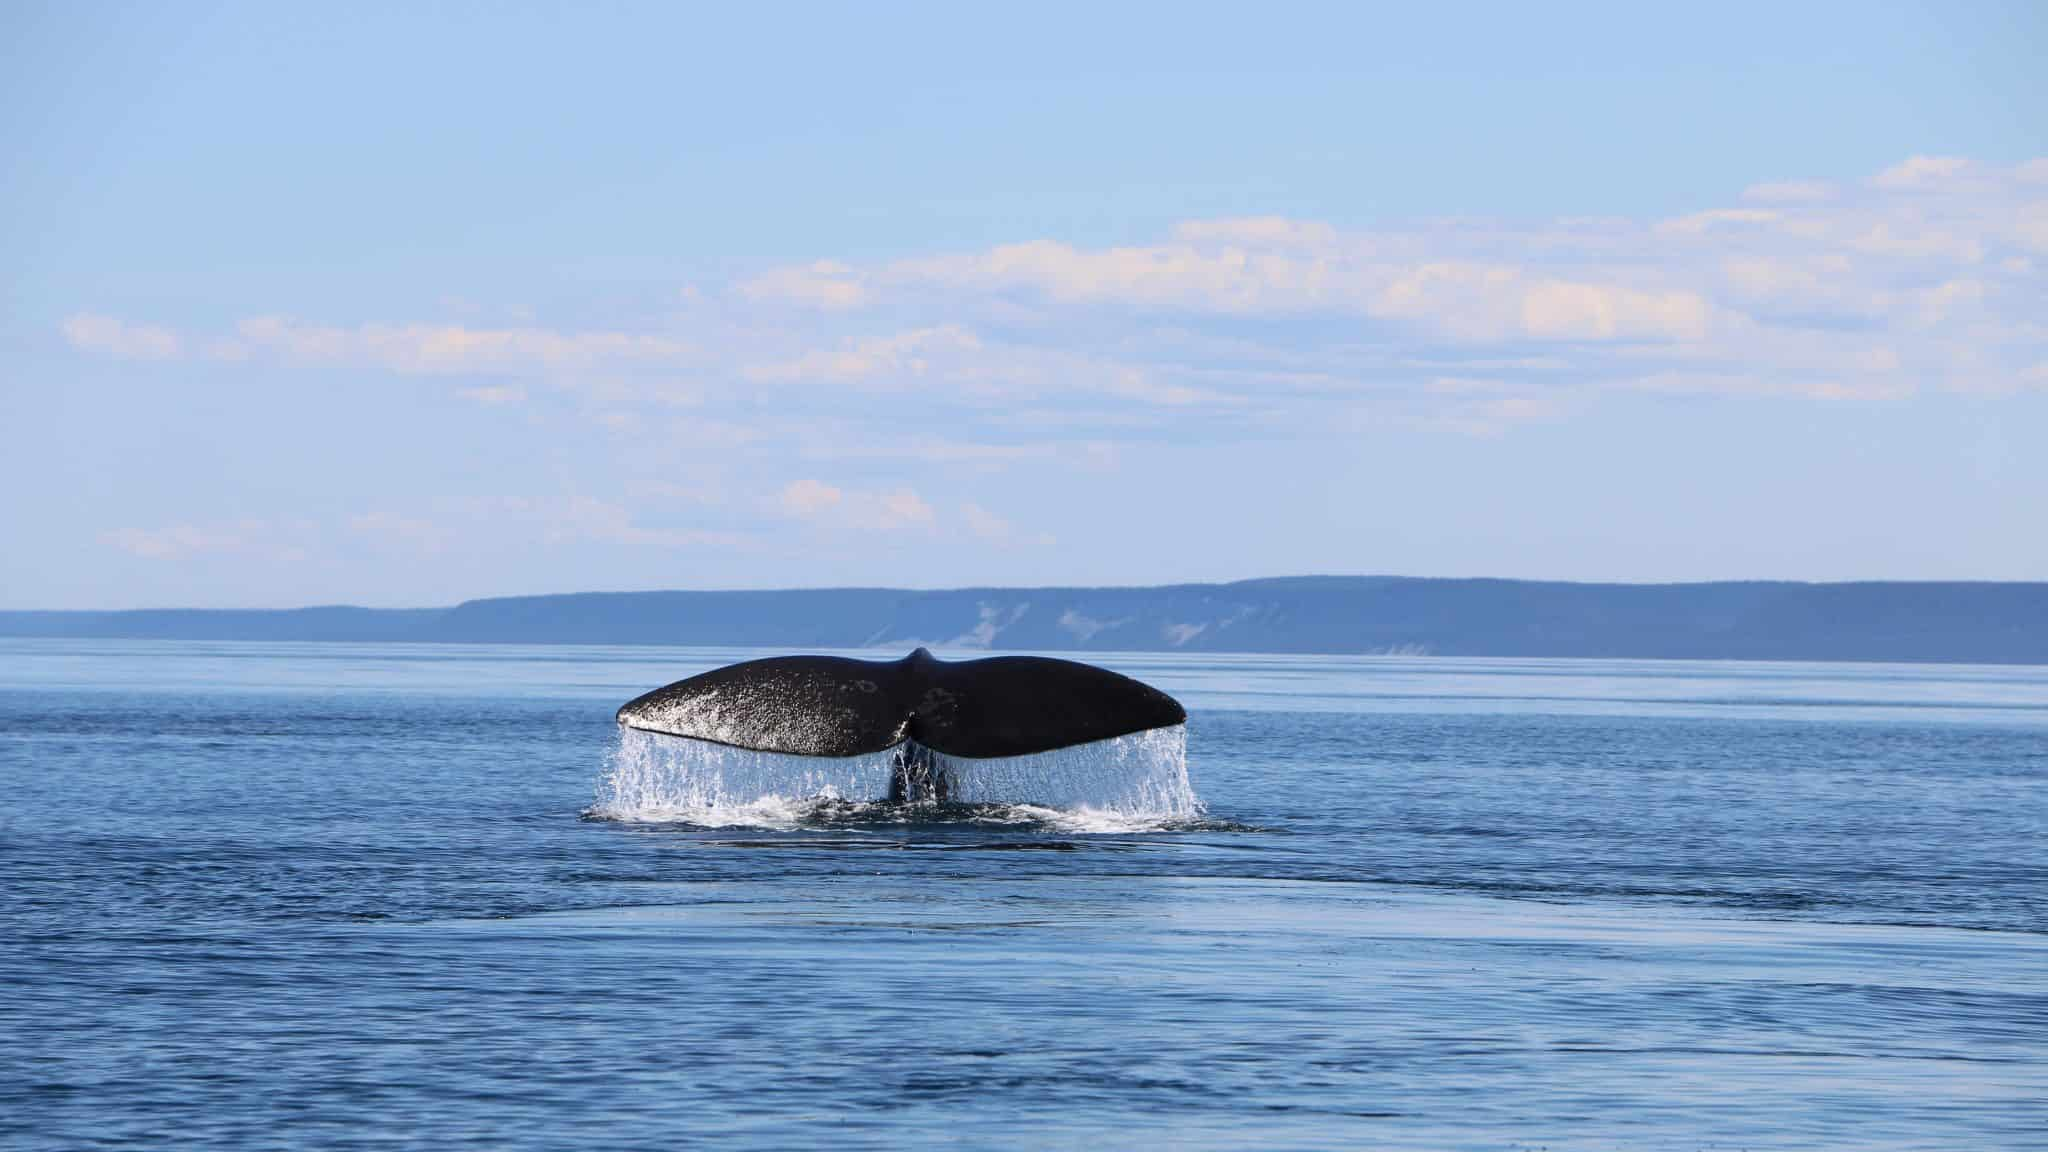 whale's tail breaching water in the sea backed by cloudy blue skies